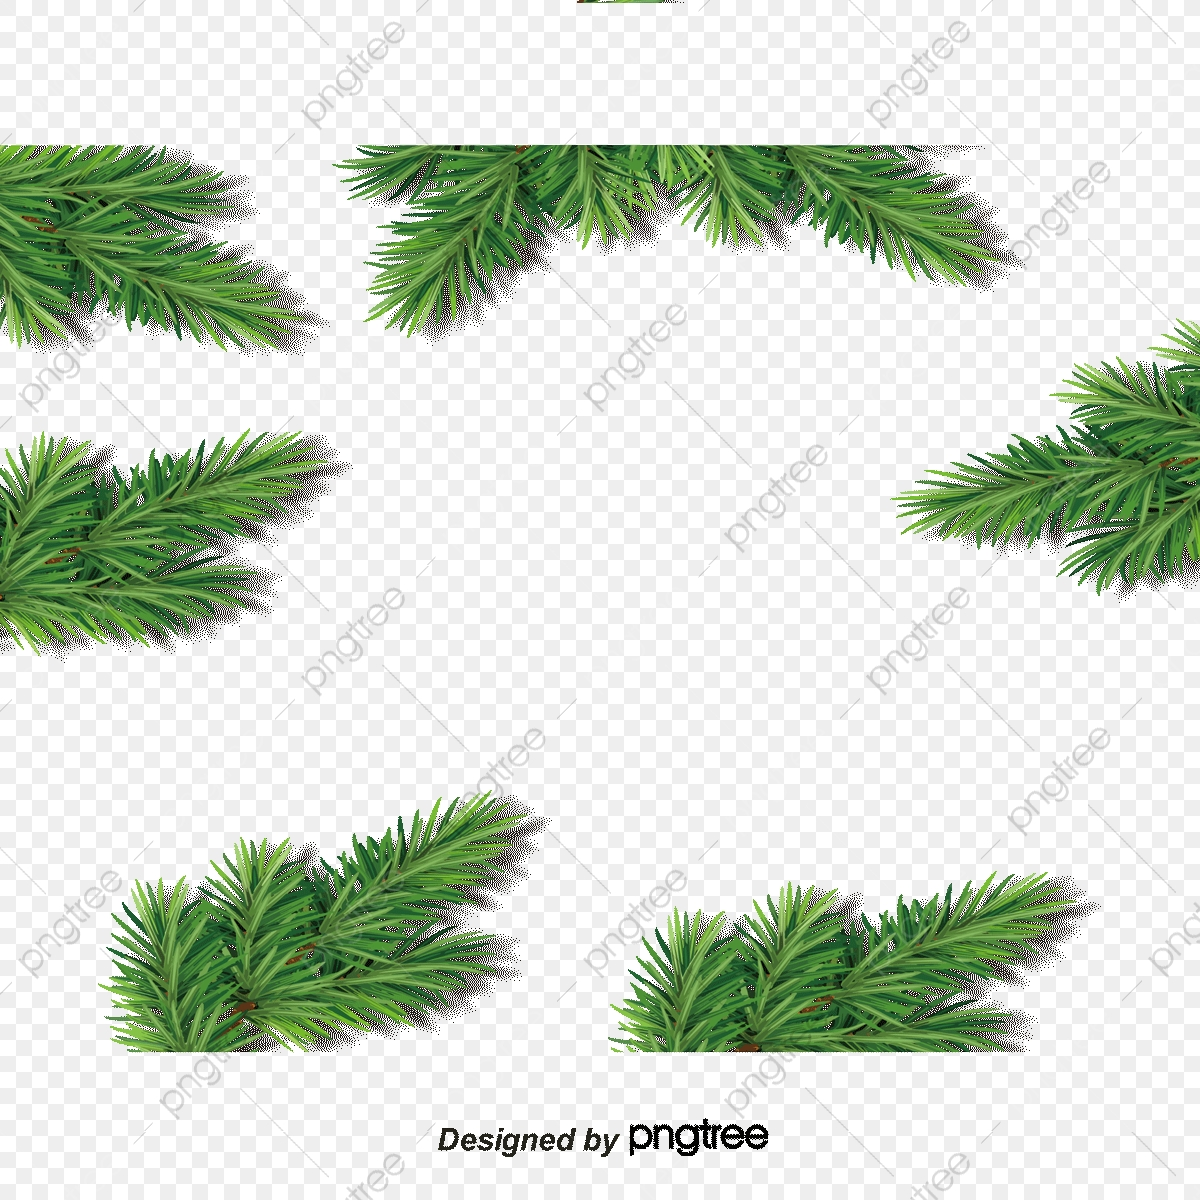 Christmas Vector Free Download.Surrounded By Fine Pine Christmas Card Vector Christmas